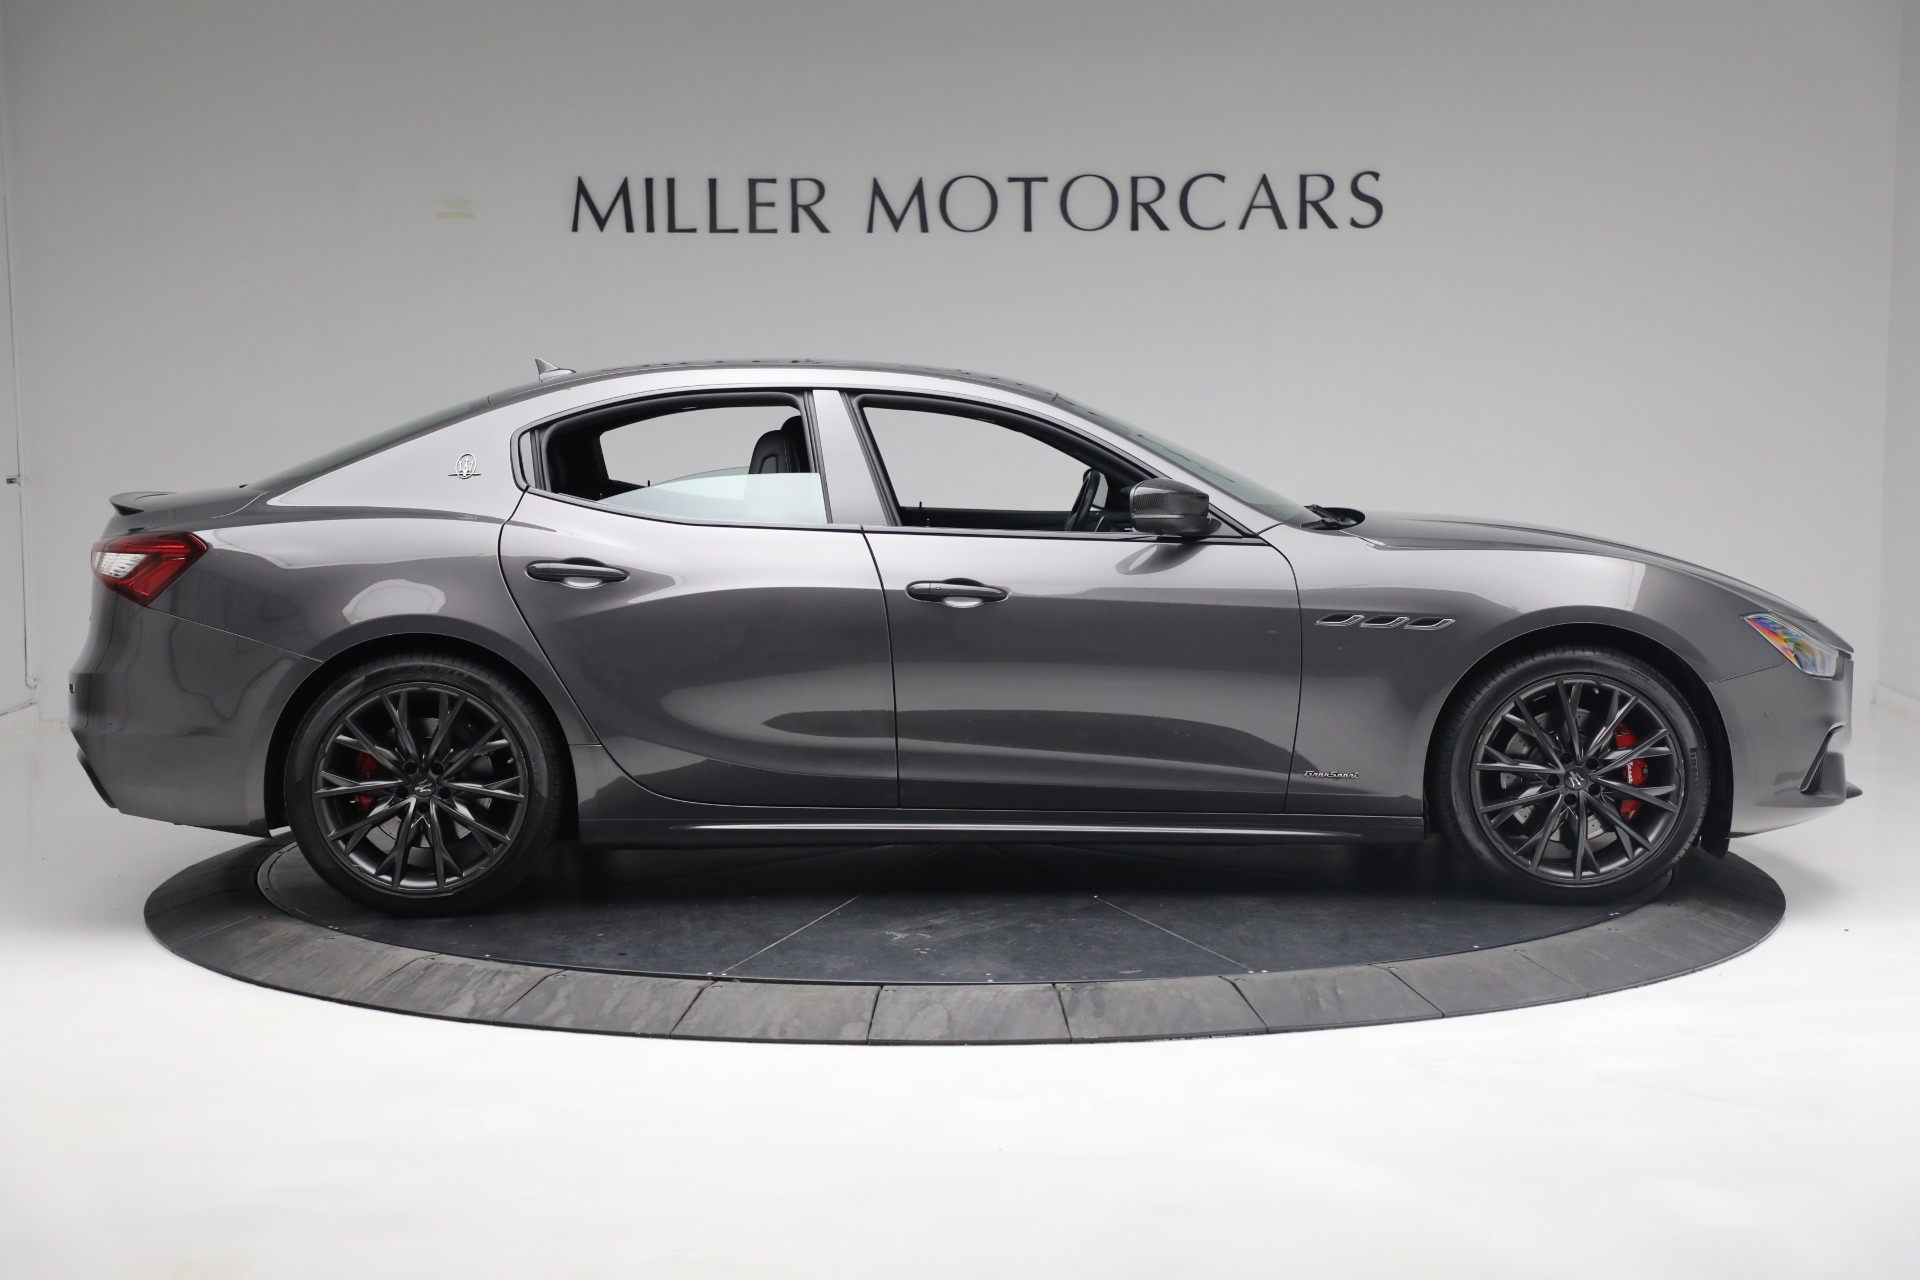 New 2019 Maserati Ghibli S Q4 GranSport For Sale In Westport, CT 2927_p9